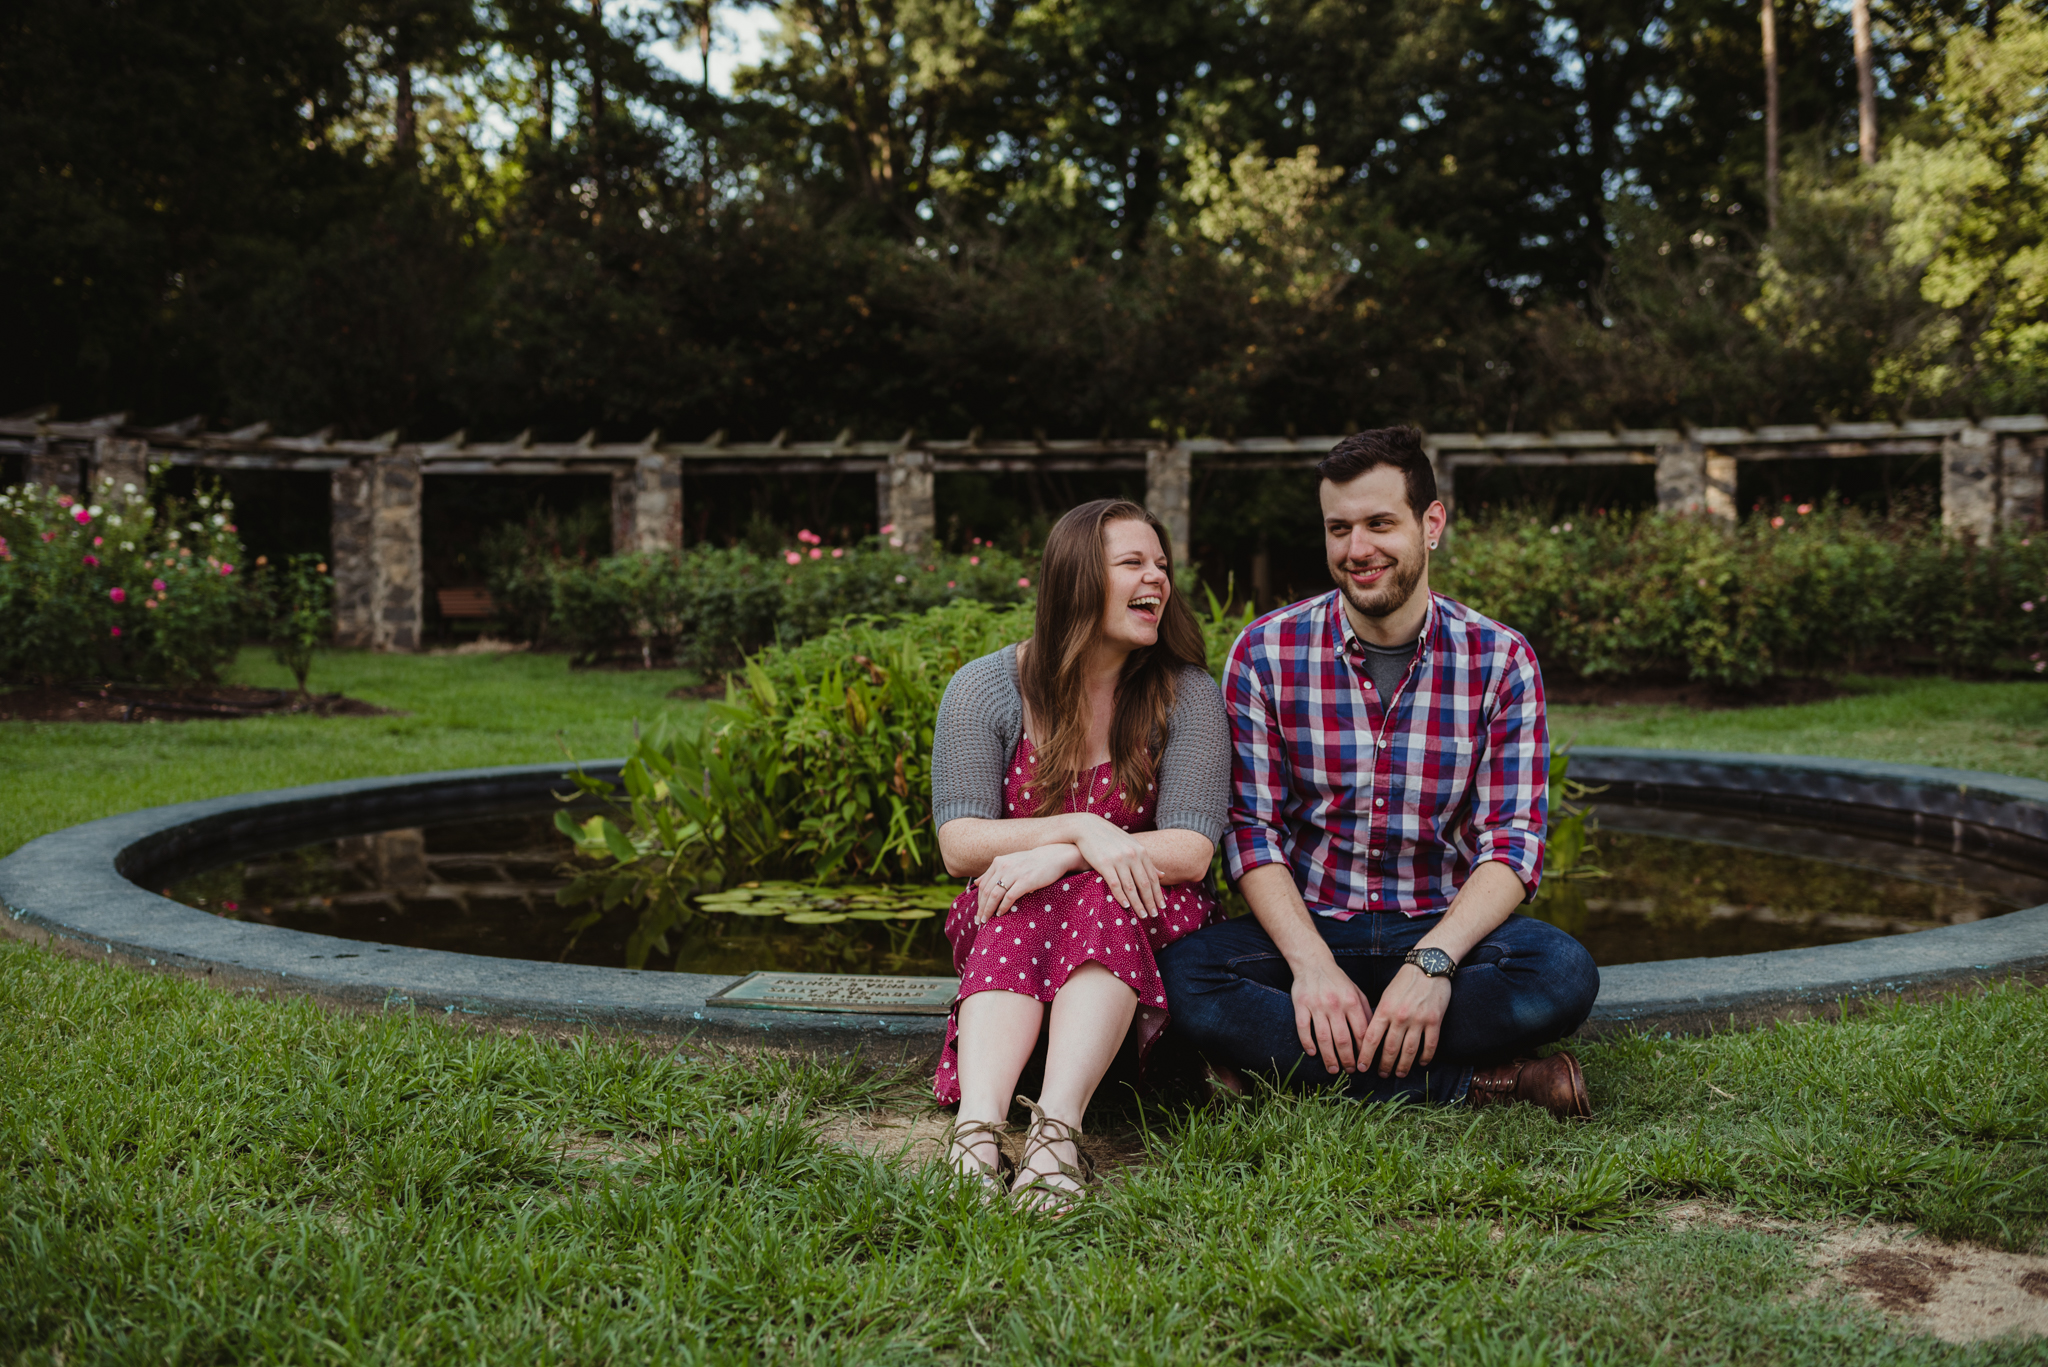 The bride and groom to be laugh with each other in front of the pond at the Raleigh Rose Garden during their engagement session with Rose Trail Images.